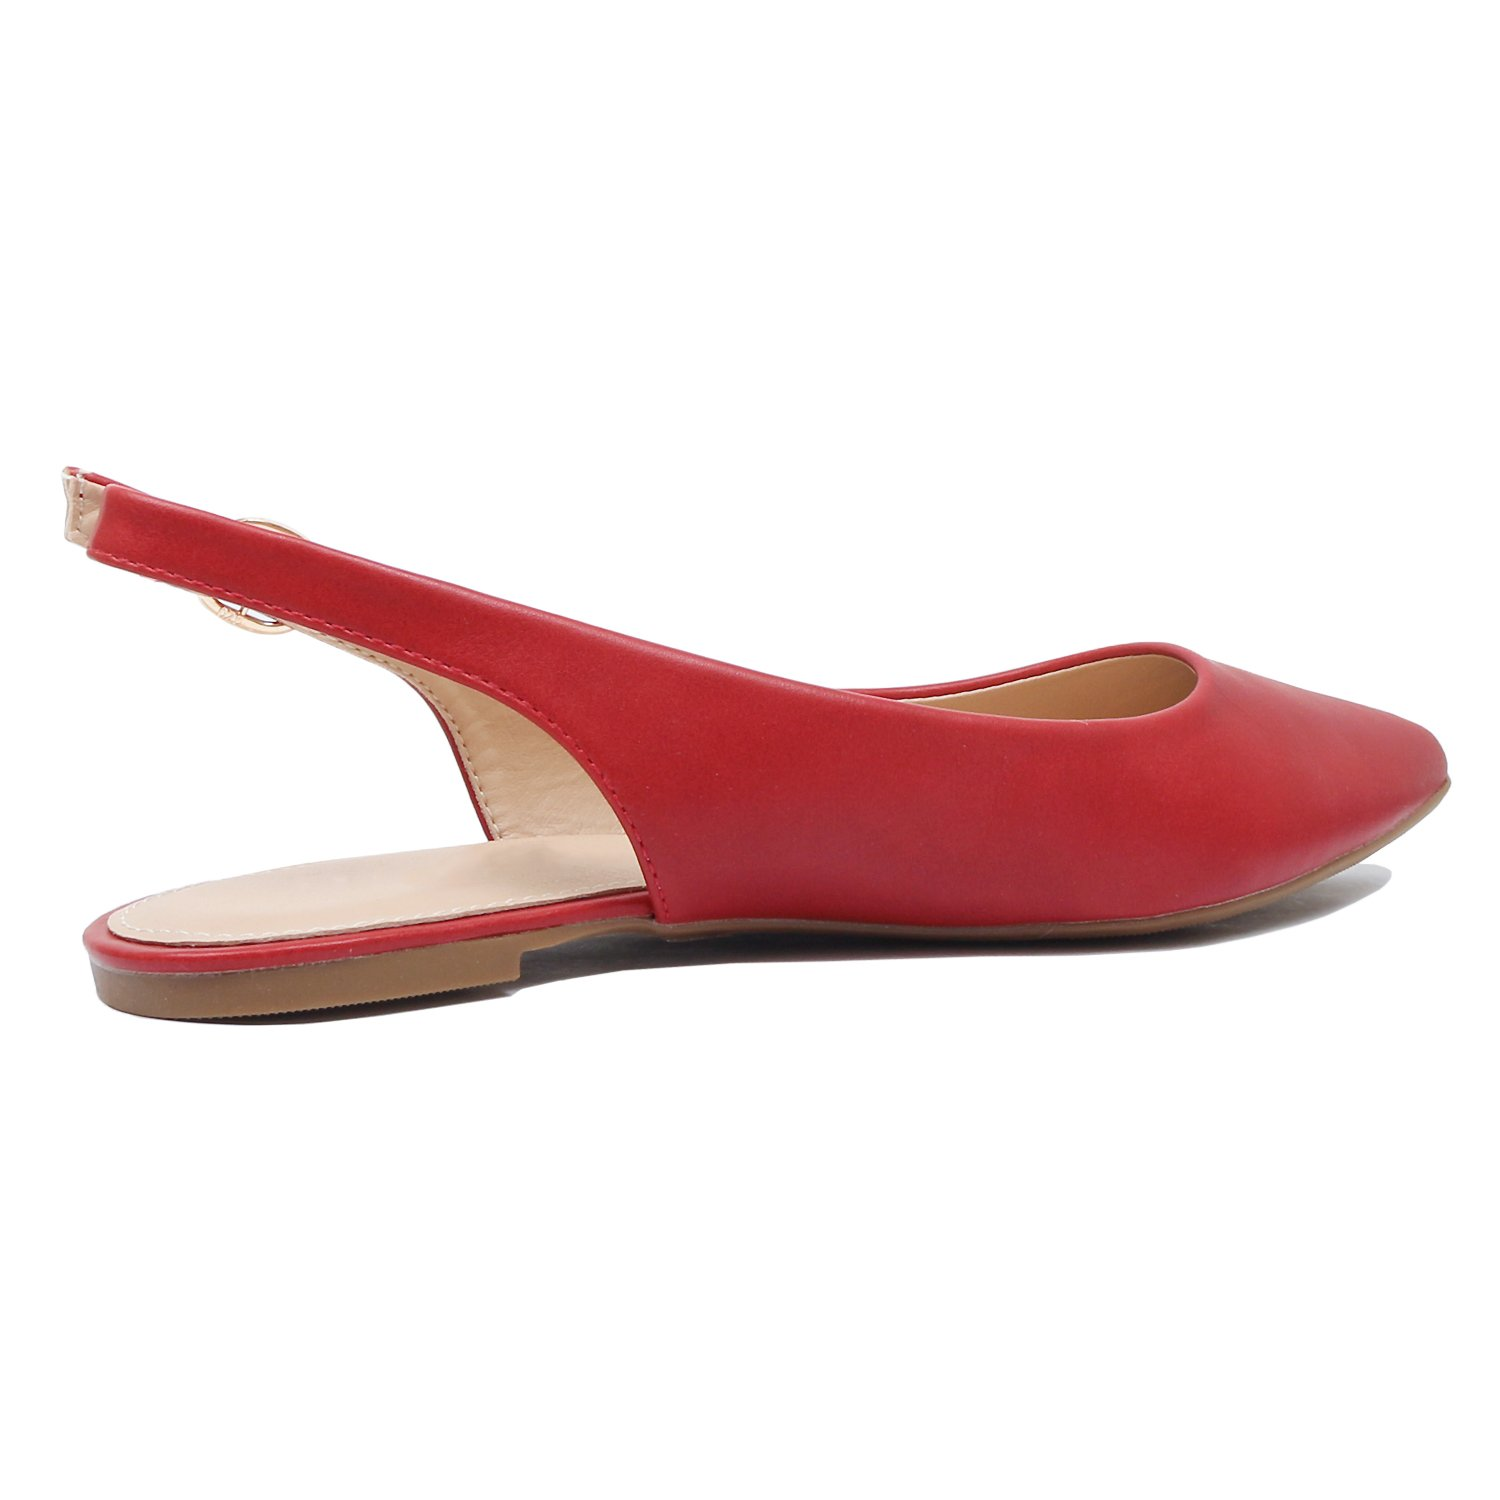 Guilty Heart - Womens Pointy Toe Slingback Buckle Comfortable Casual Dressy Flats (8.5 B(M) US, Red Pu) by Guilty Heart (Image #5)